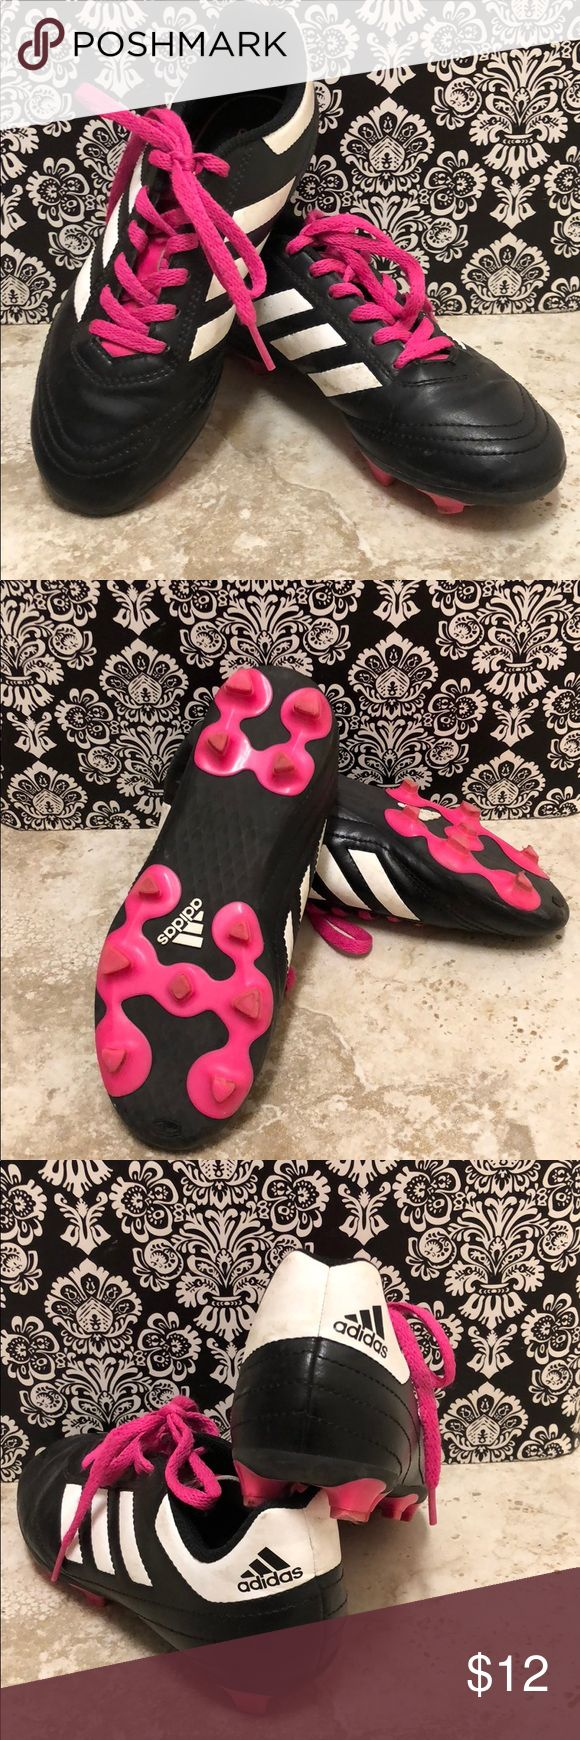 Adidas cleats for kids. Soccer shoes. Adidas cleats. Soccer shoes. Pink and black. Great condition. Size 1 1/2. Shoes Sneakers